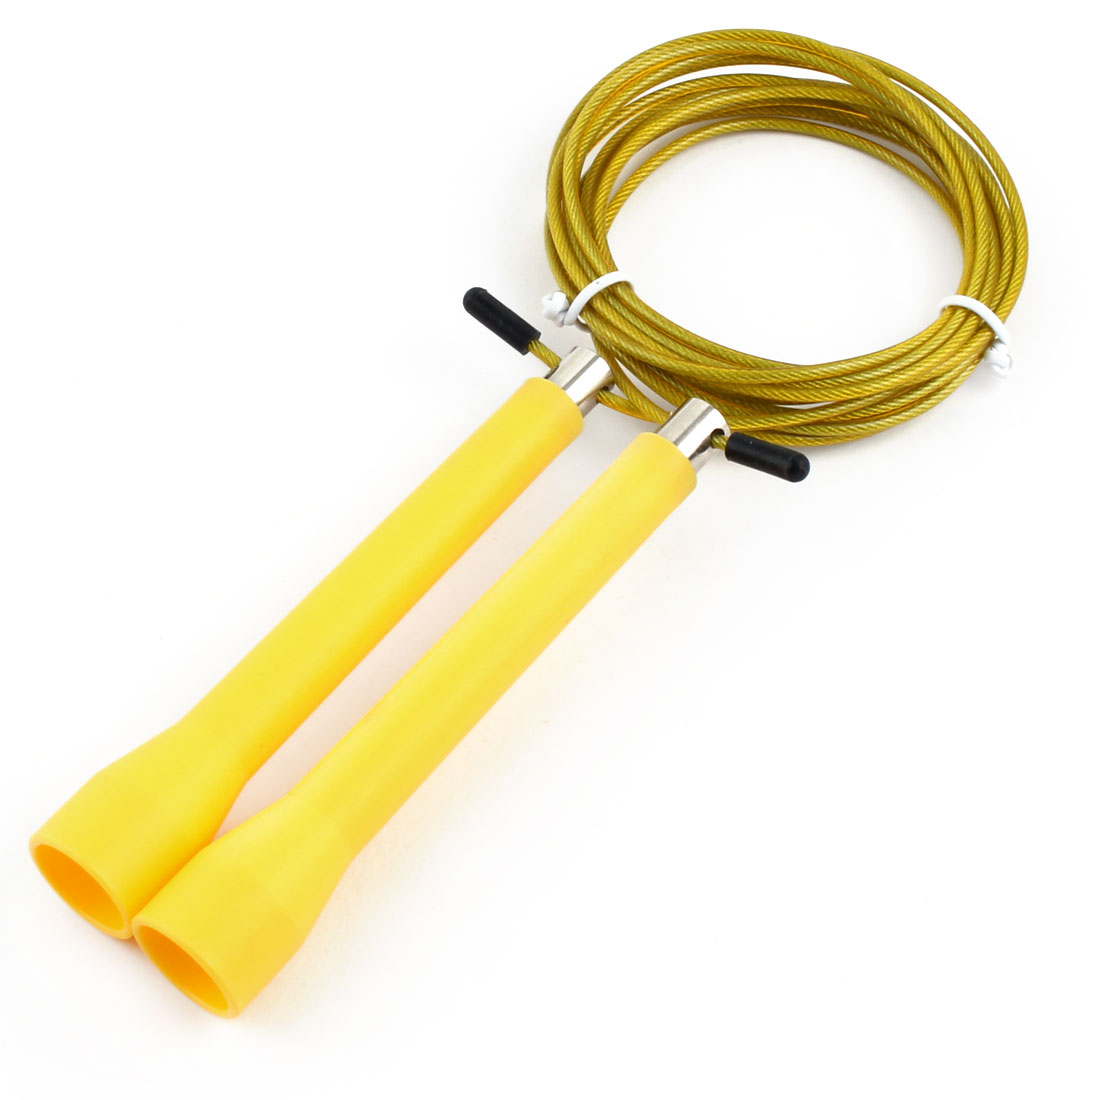 LeTEK Authorized Outdoor Workout Skipping Jump Rope Yellow